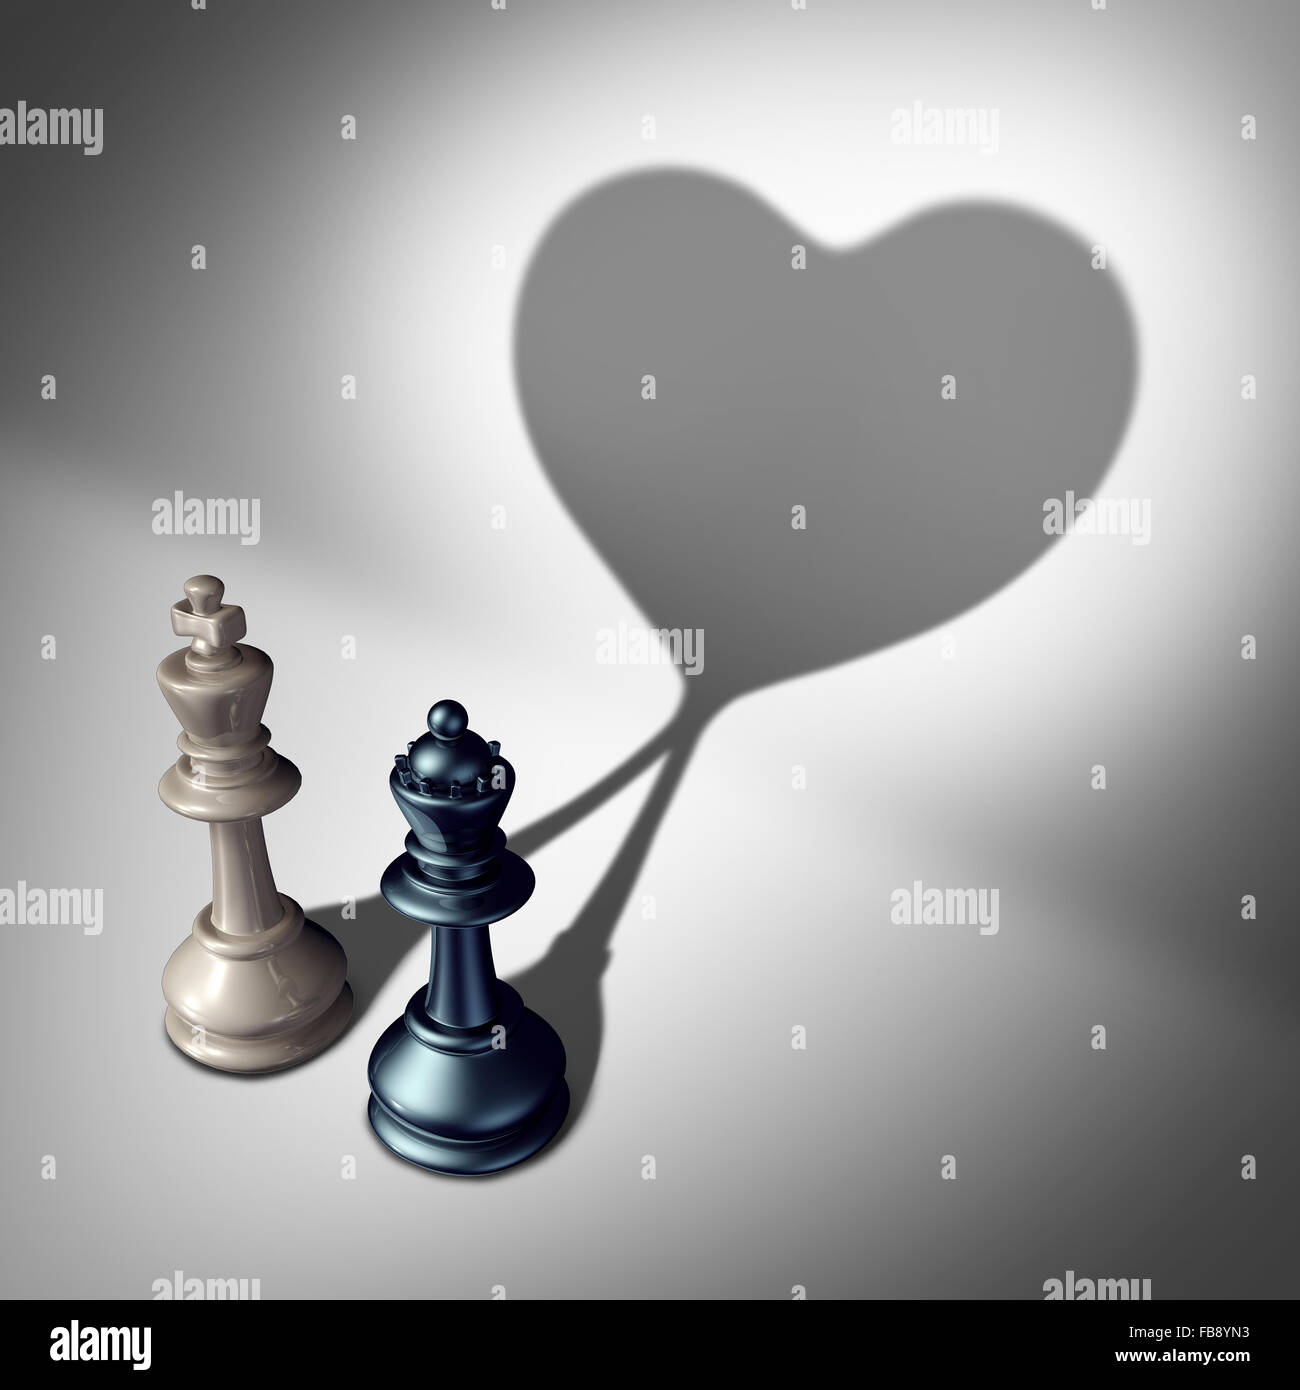 Couple in love as a valentines day concept as a white king and black queen chess